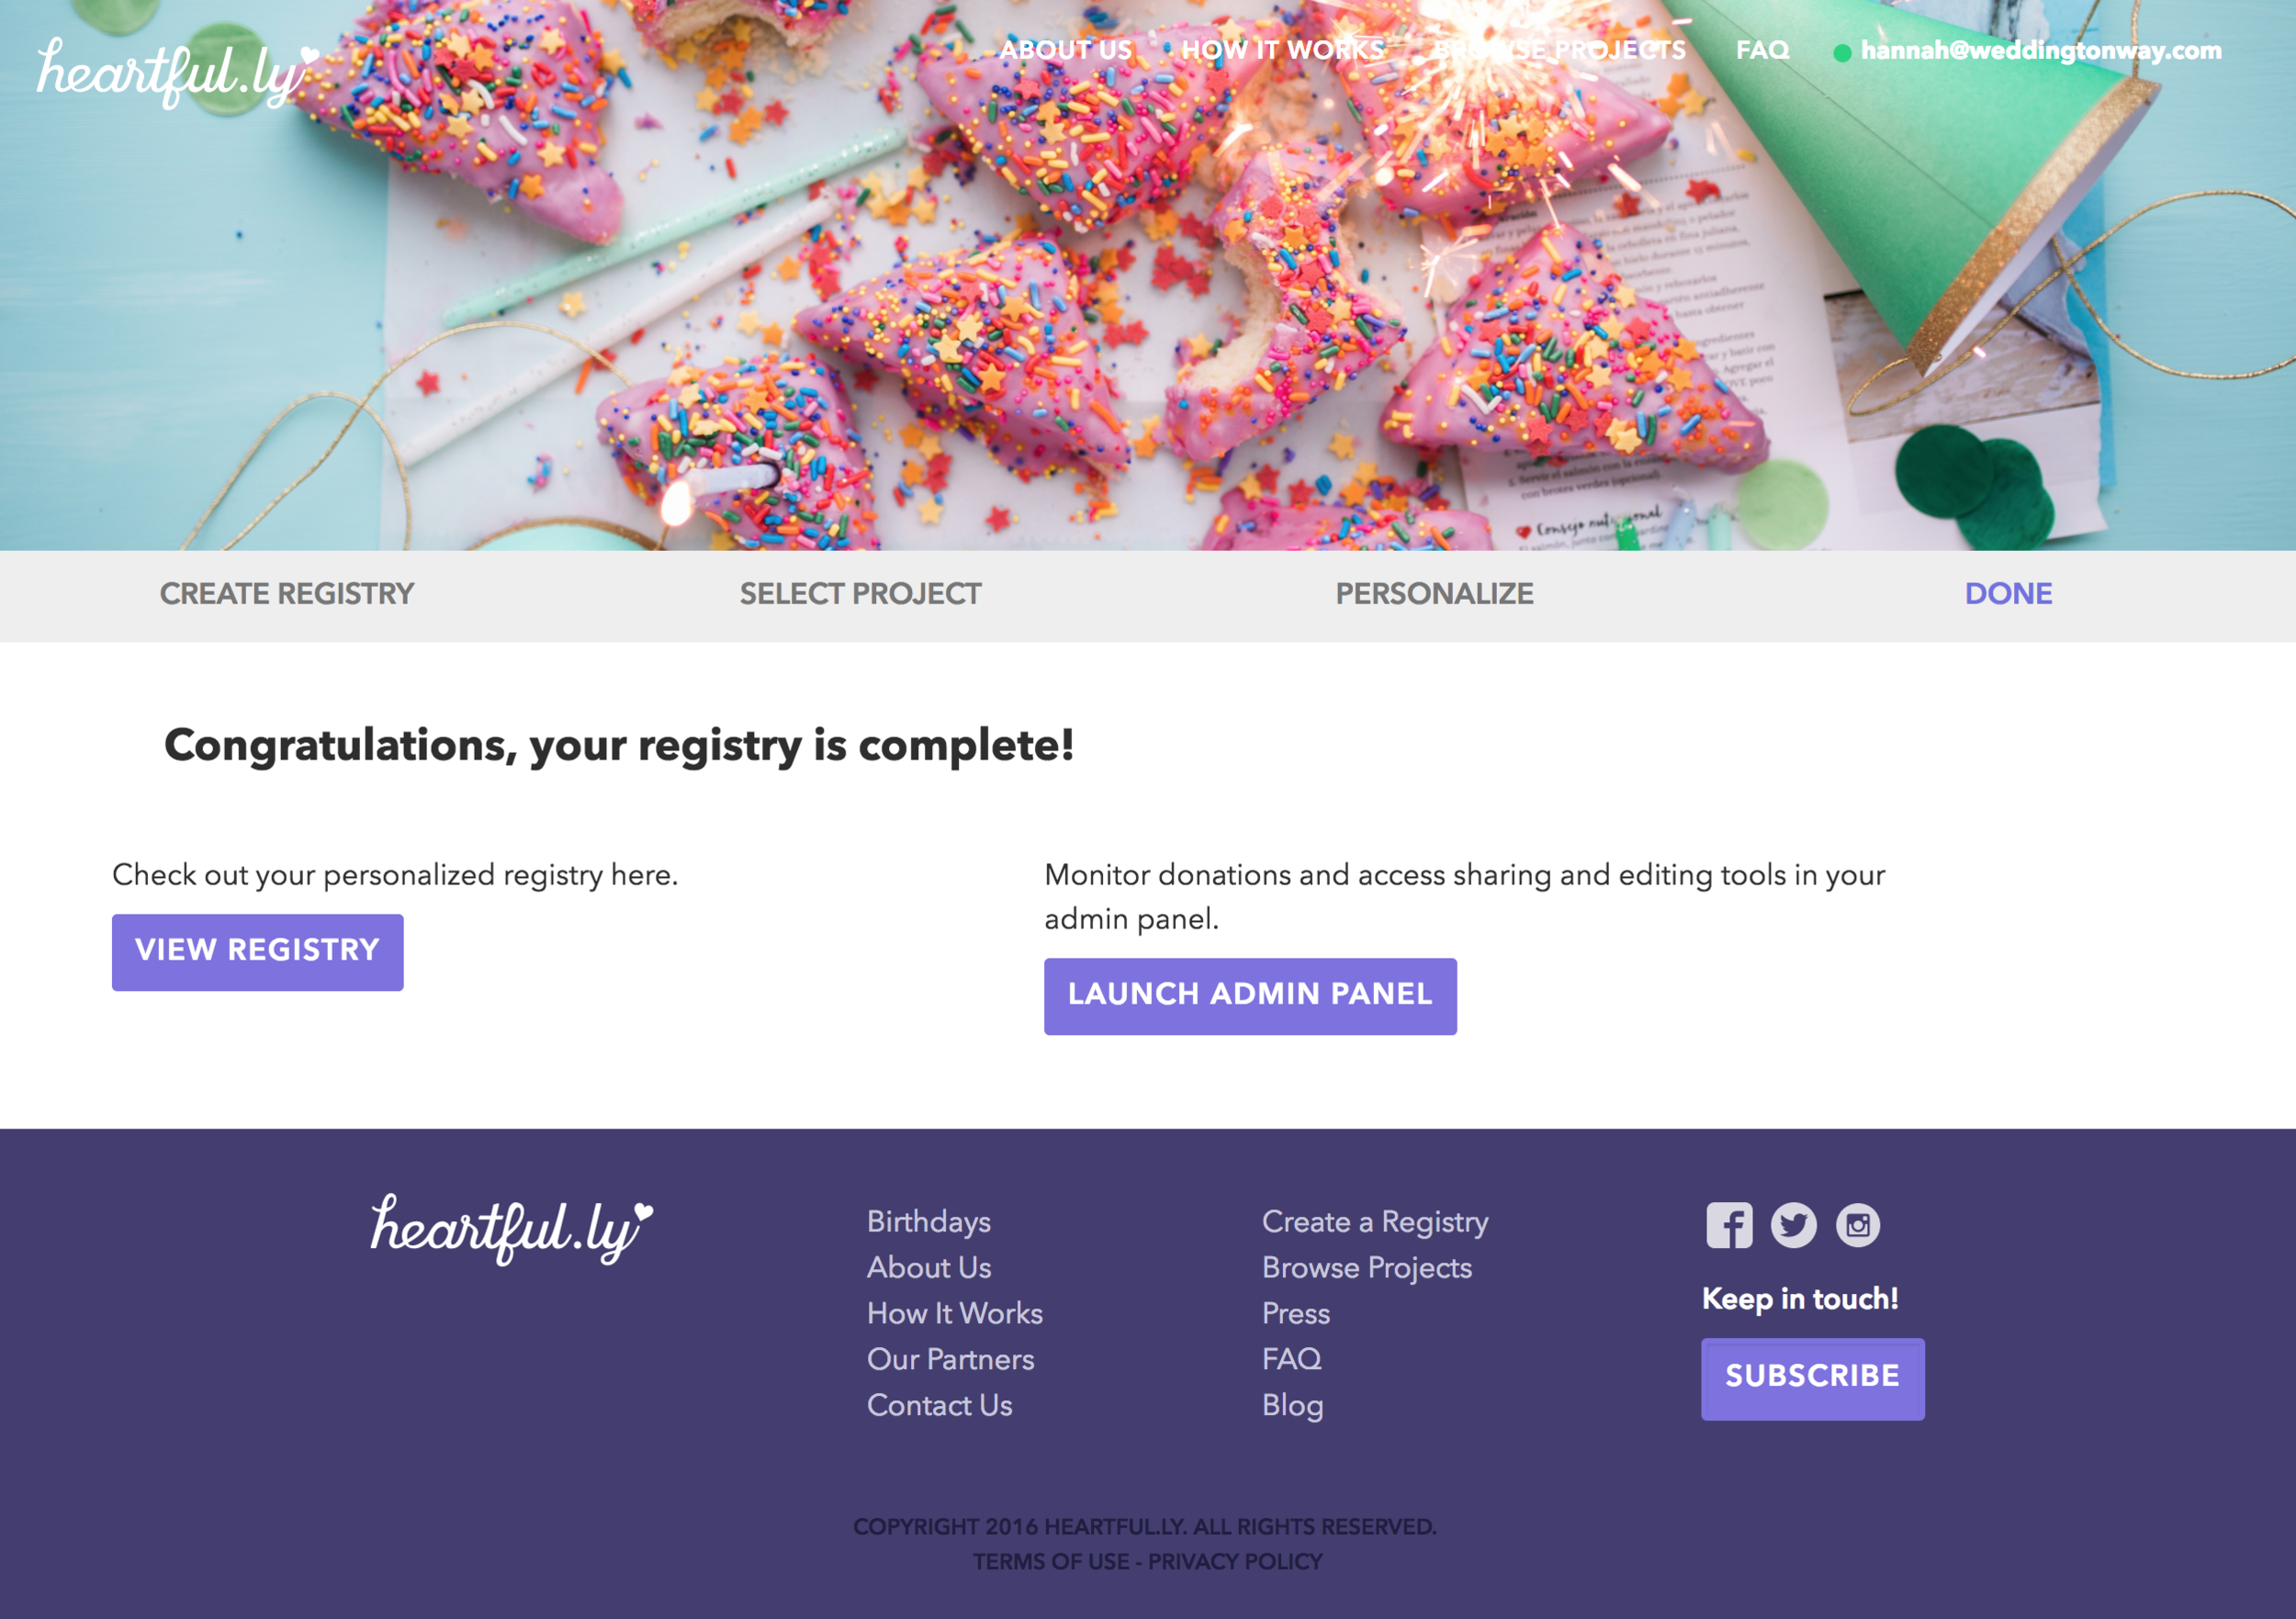 screencapture-heartful-ly-registries-new-1498537280298.png